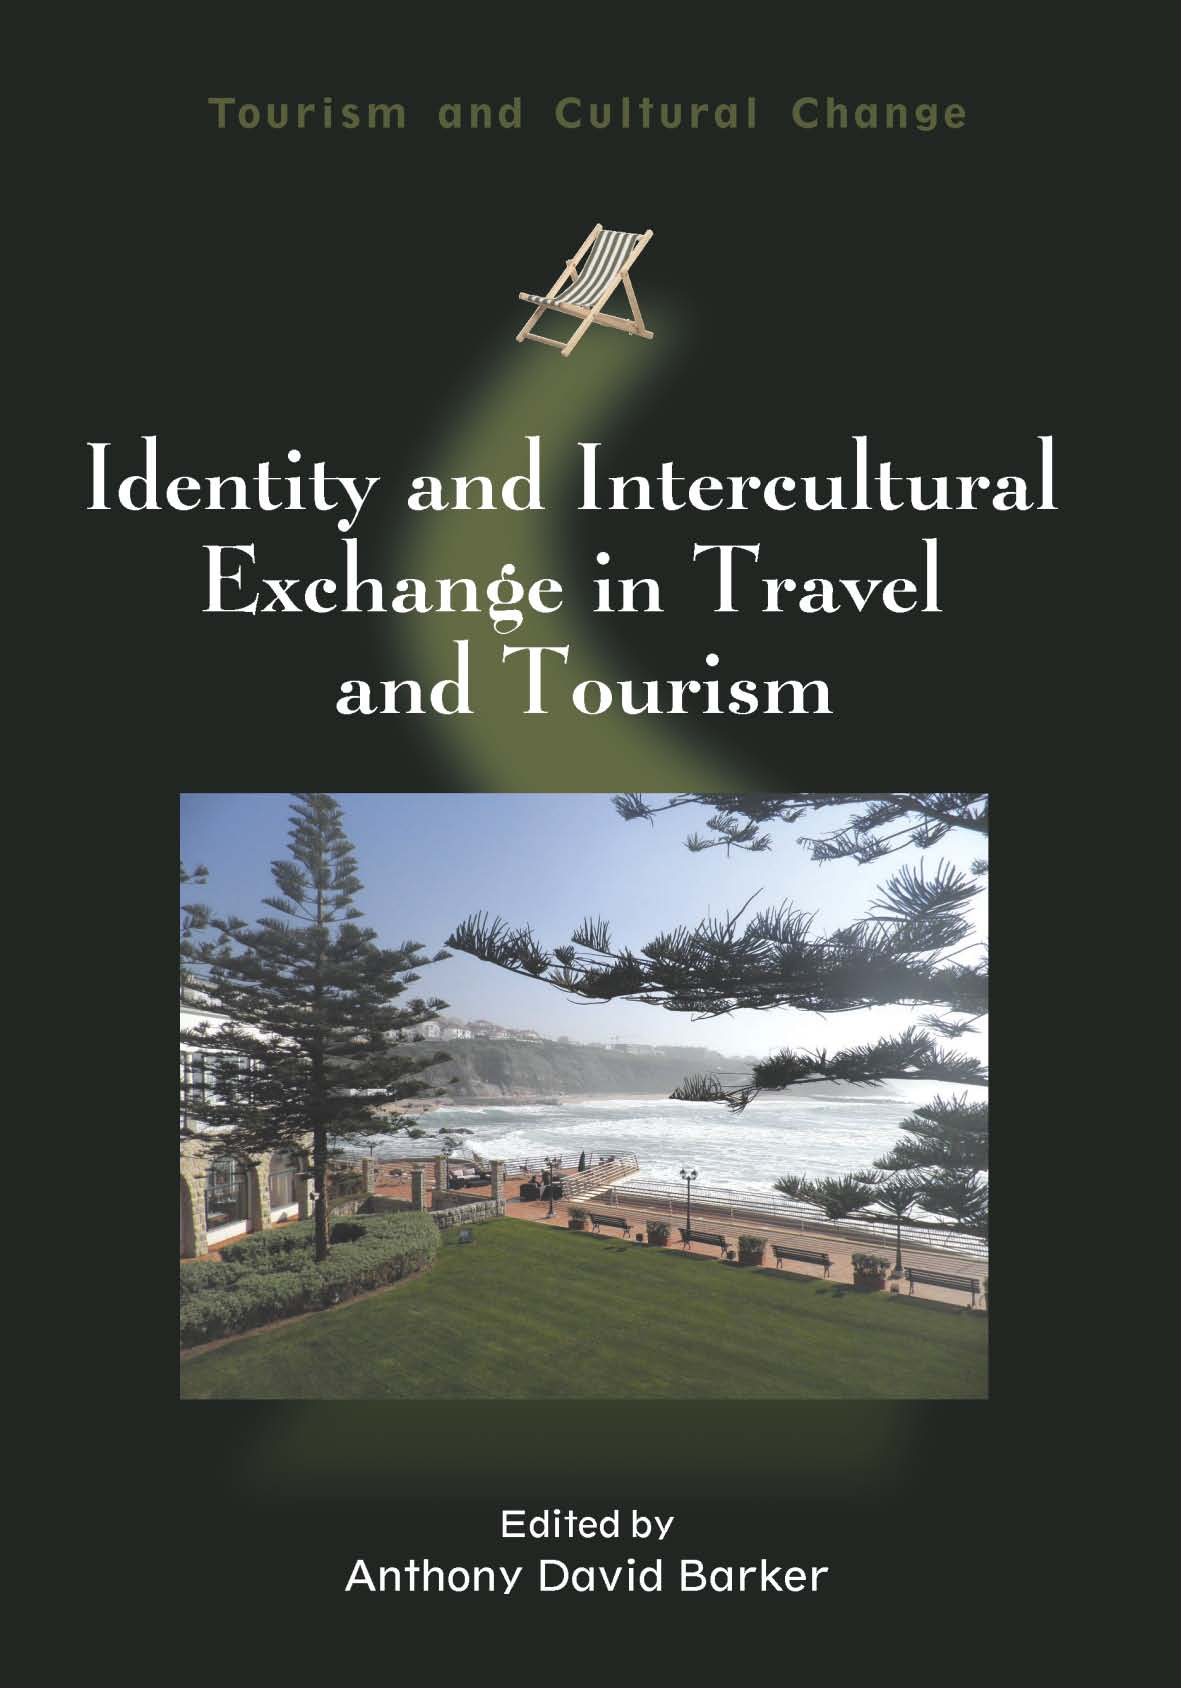 general paper essays on tourism Gp essayscan terrorism ever be justified - free download as gce a level general paper essays poverty in 1987 after the soviet union.